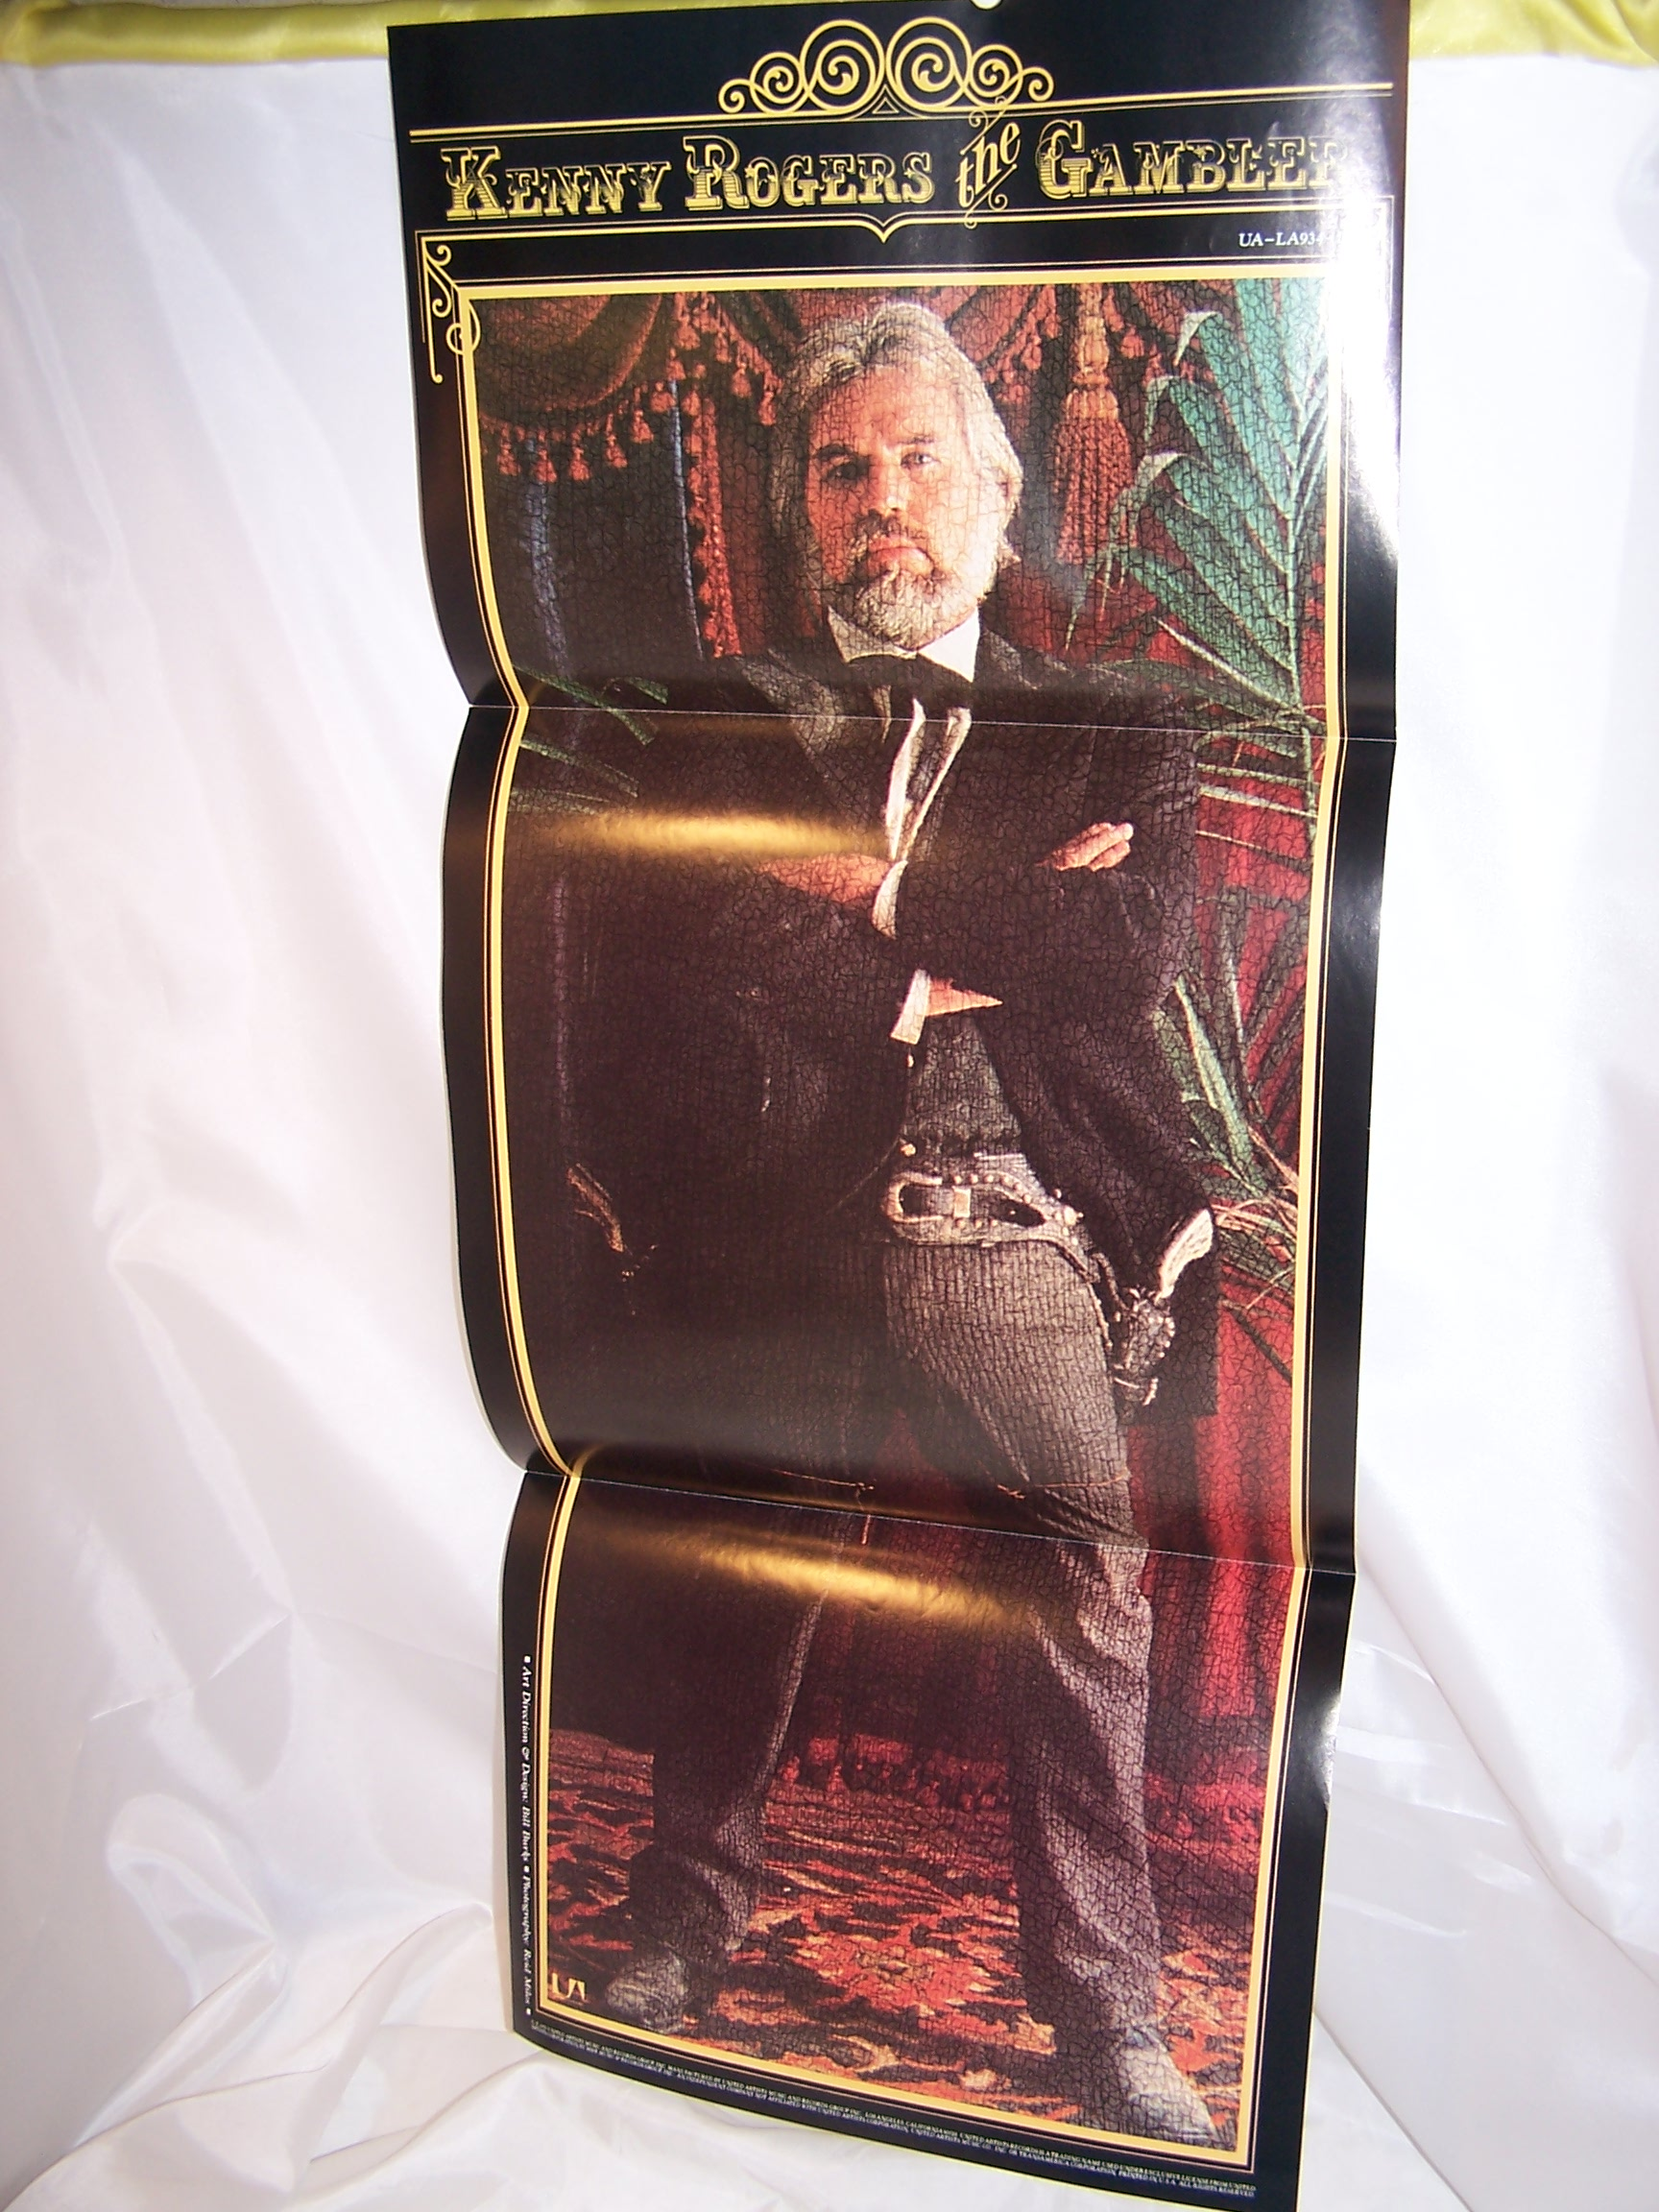 kenny rogers the gambler record album  poster  1978